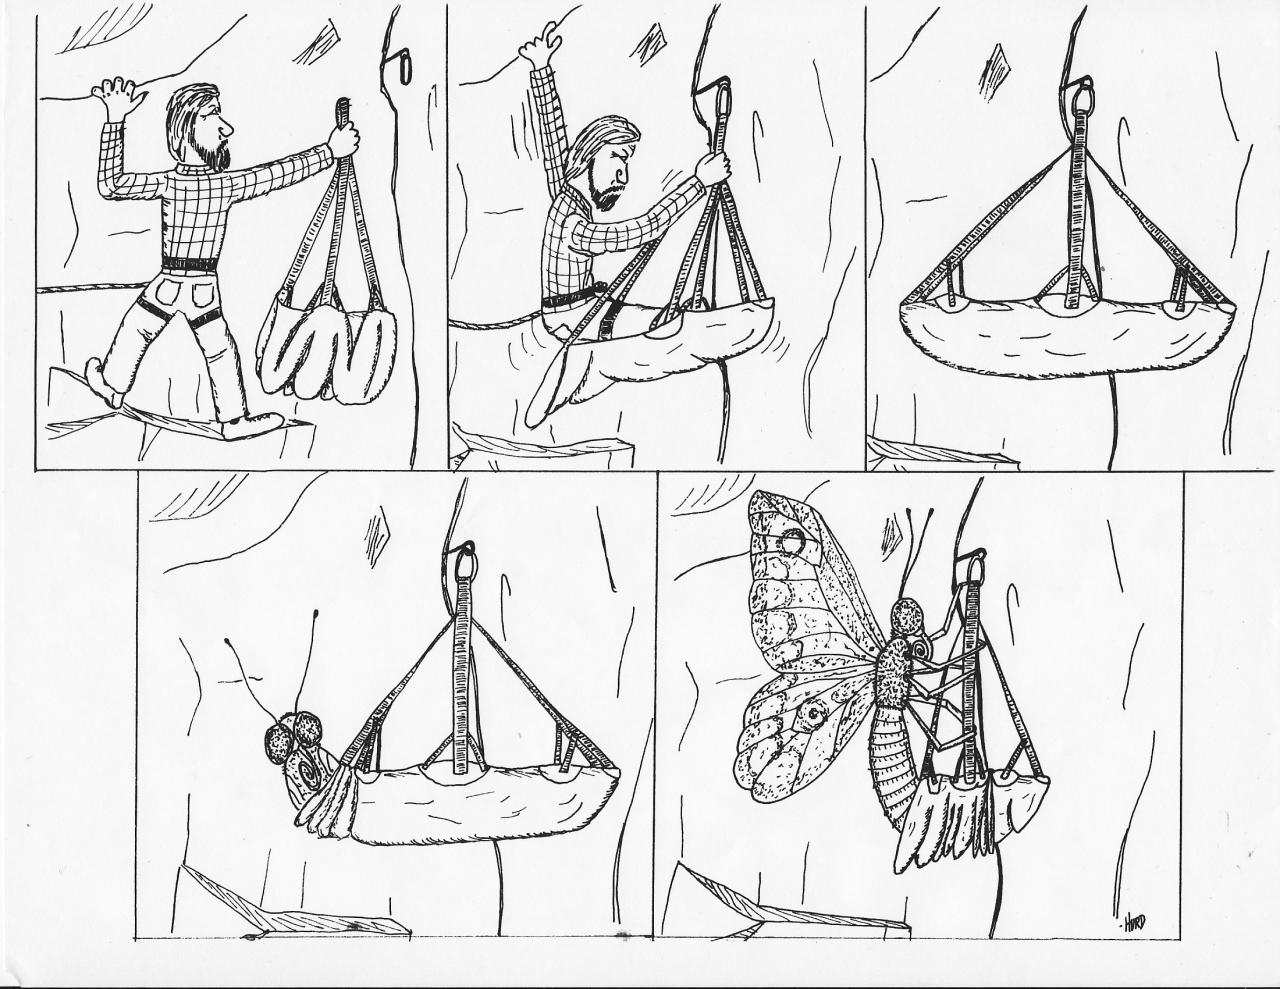 Climbing Hammock Cartoon